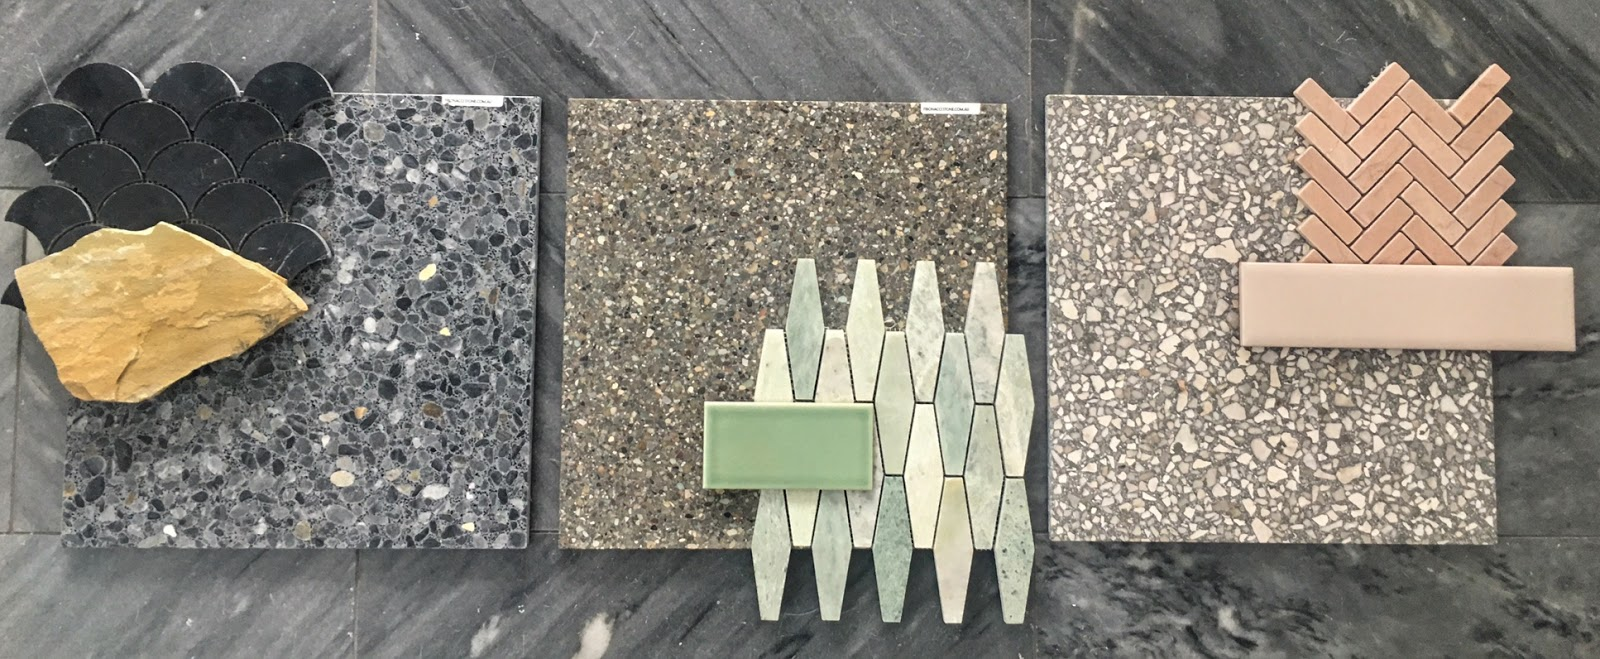 Style And Substance Terrazzo The Original Upcycled Beauty